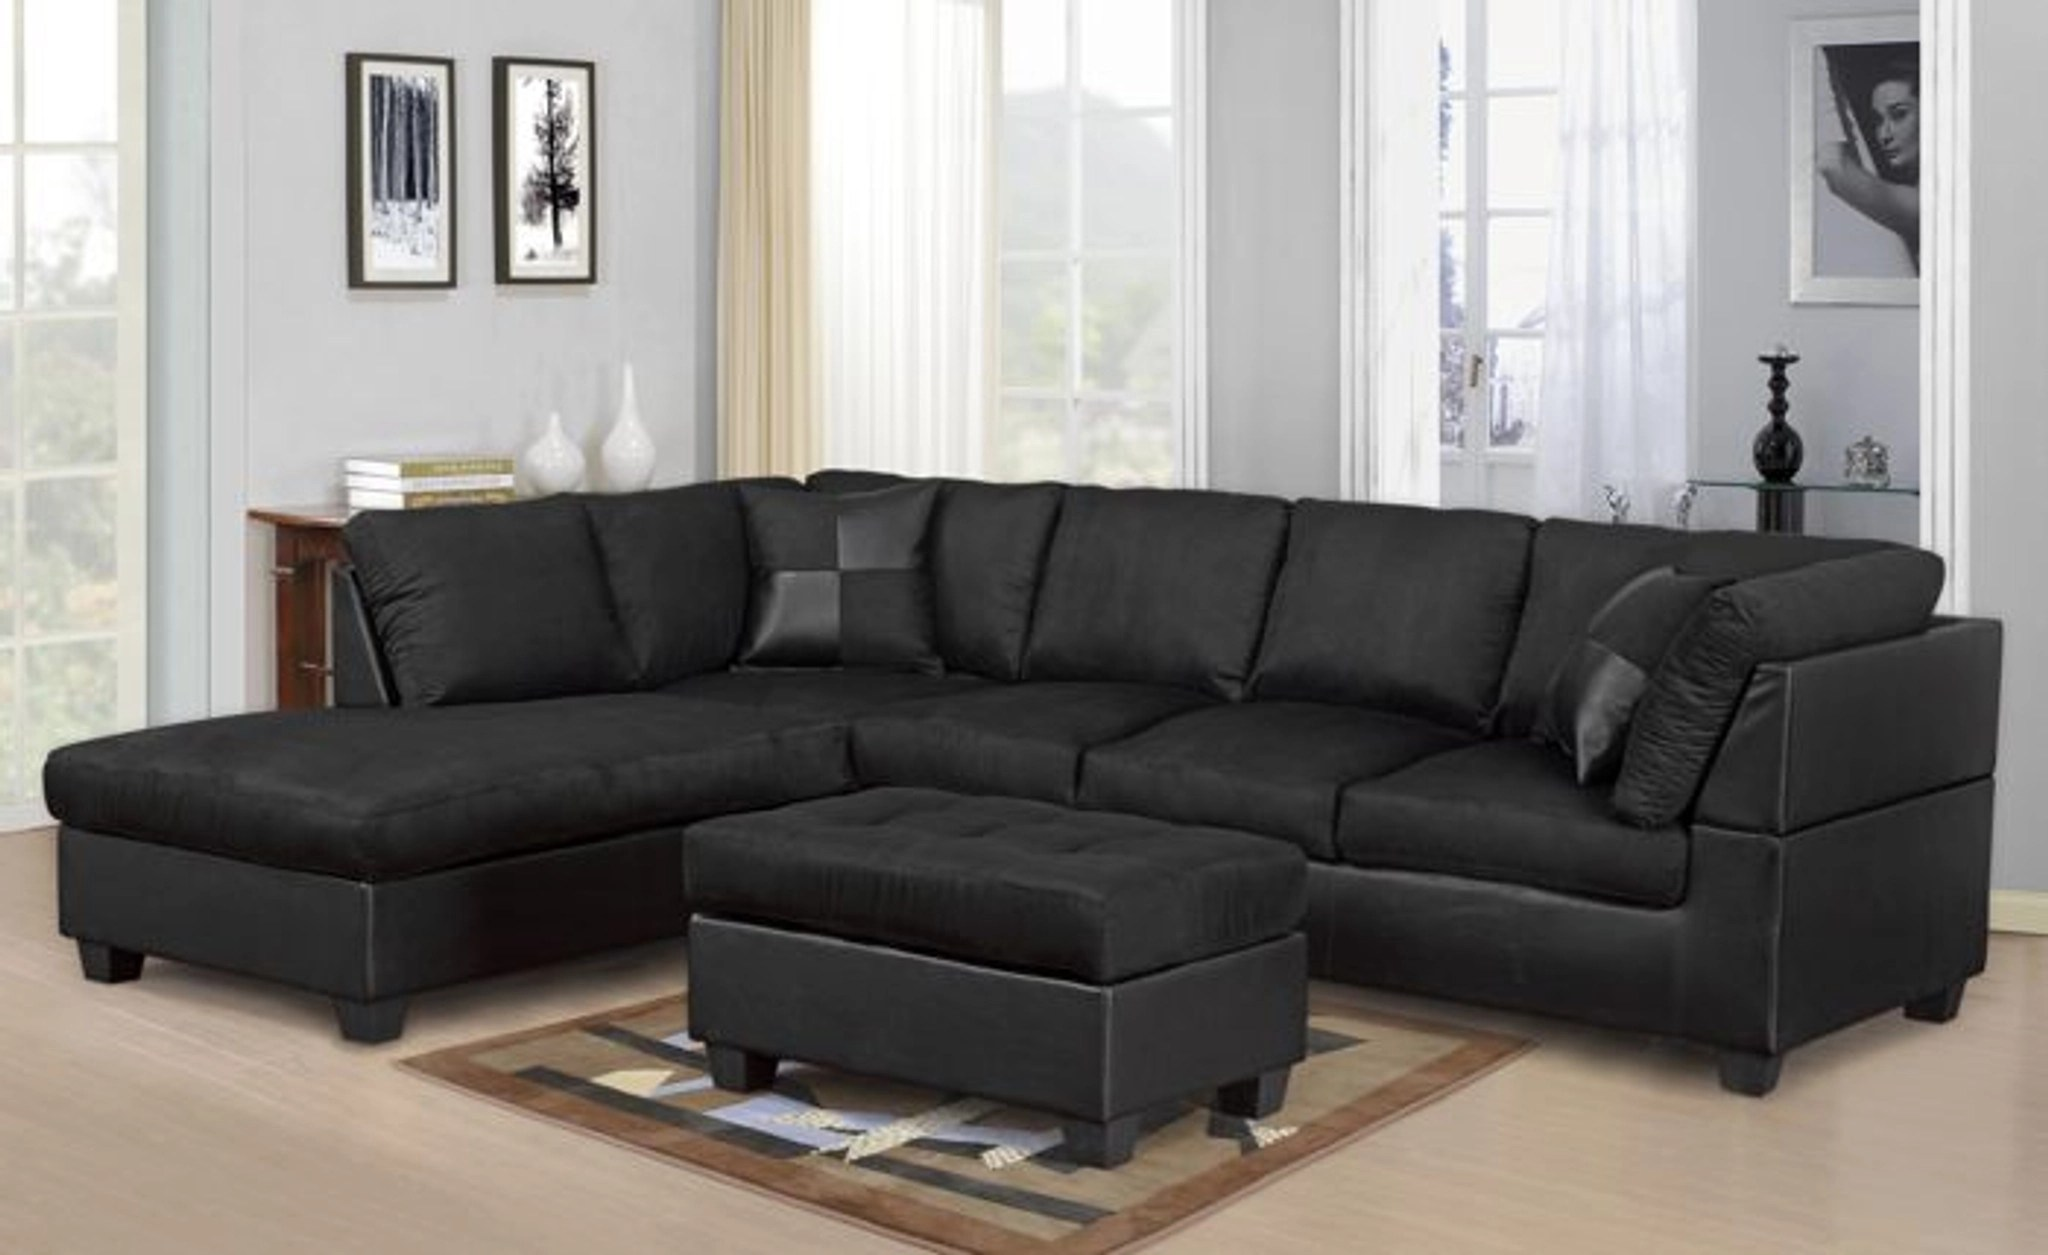 Modern 2 Pcs Cypress Black Color Sectional Sofa And Chaise Set Km Home Furniture Mattress